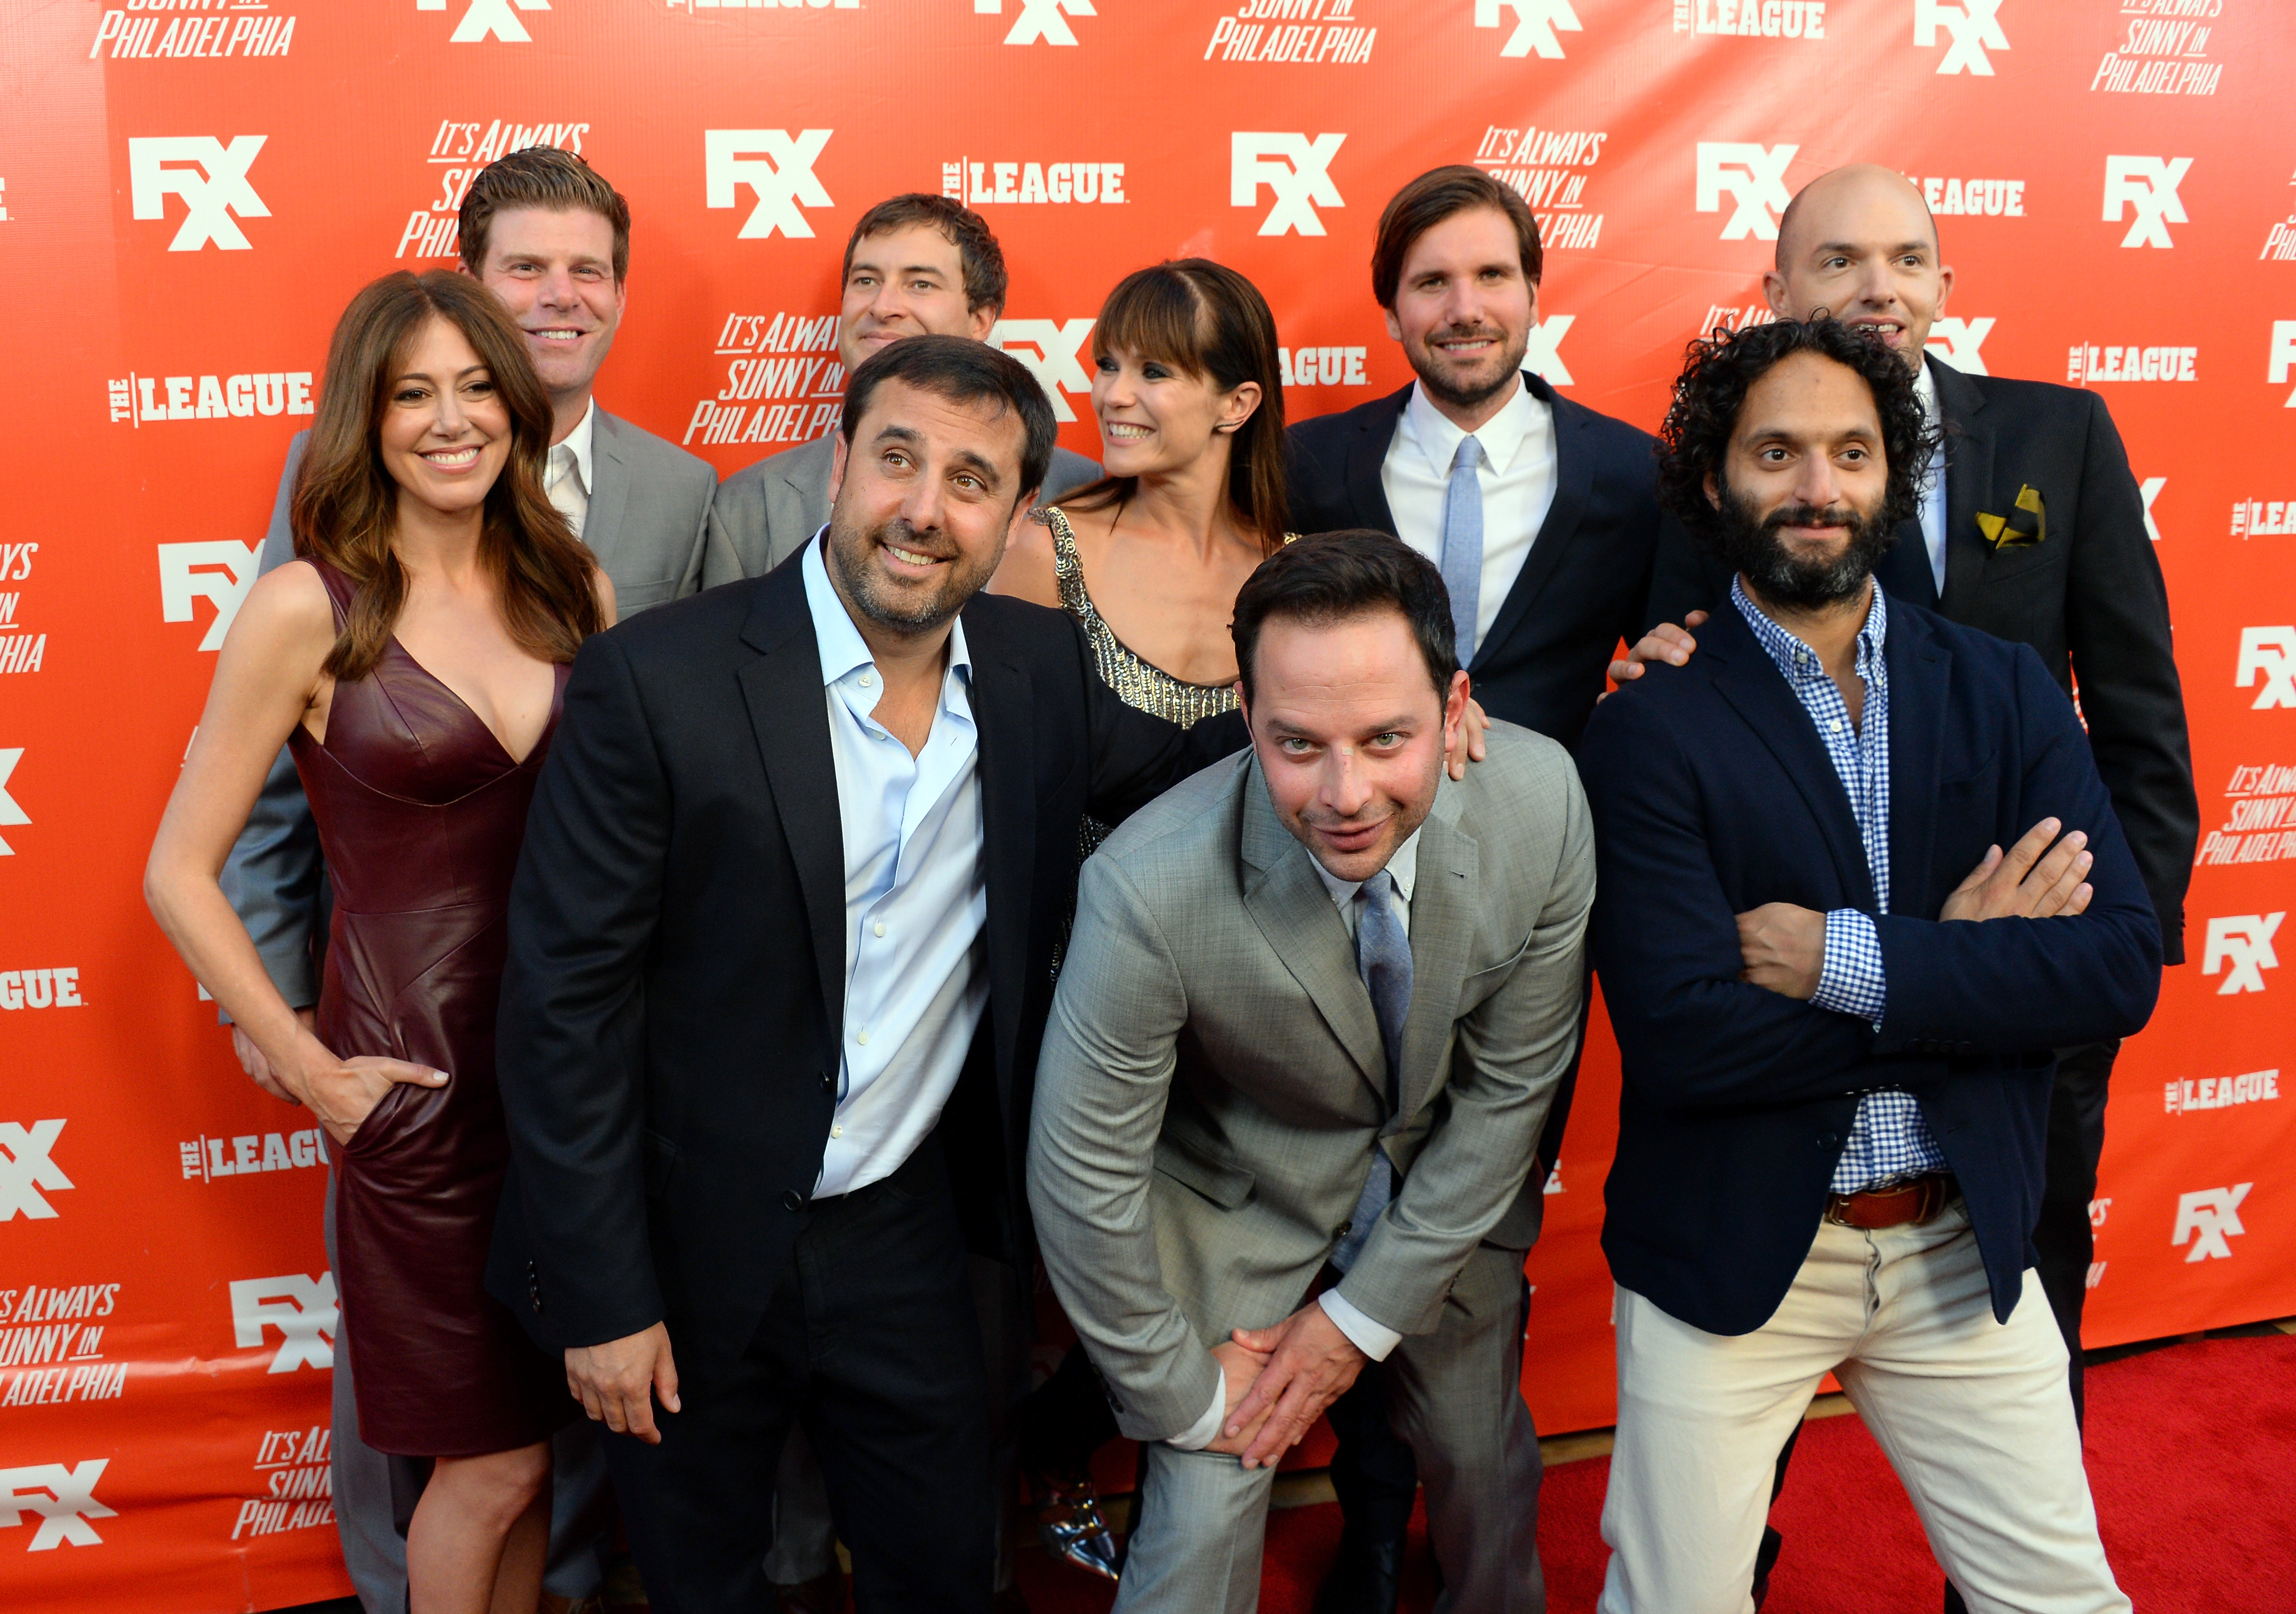 The cast and crew of  The League  attend the premiere and launch party for FXX Network's  It's Always Sunny In Philadelphia  and  The League  at Lure on Sept. 3, 2013 in Hollywood.